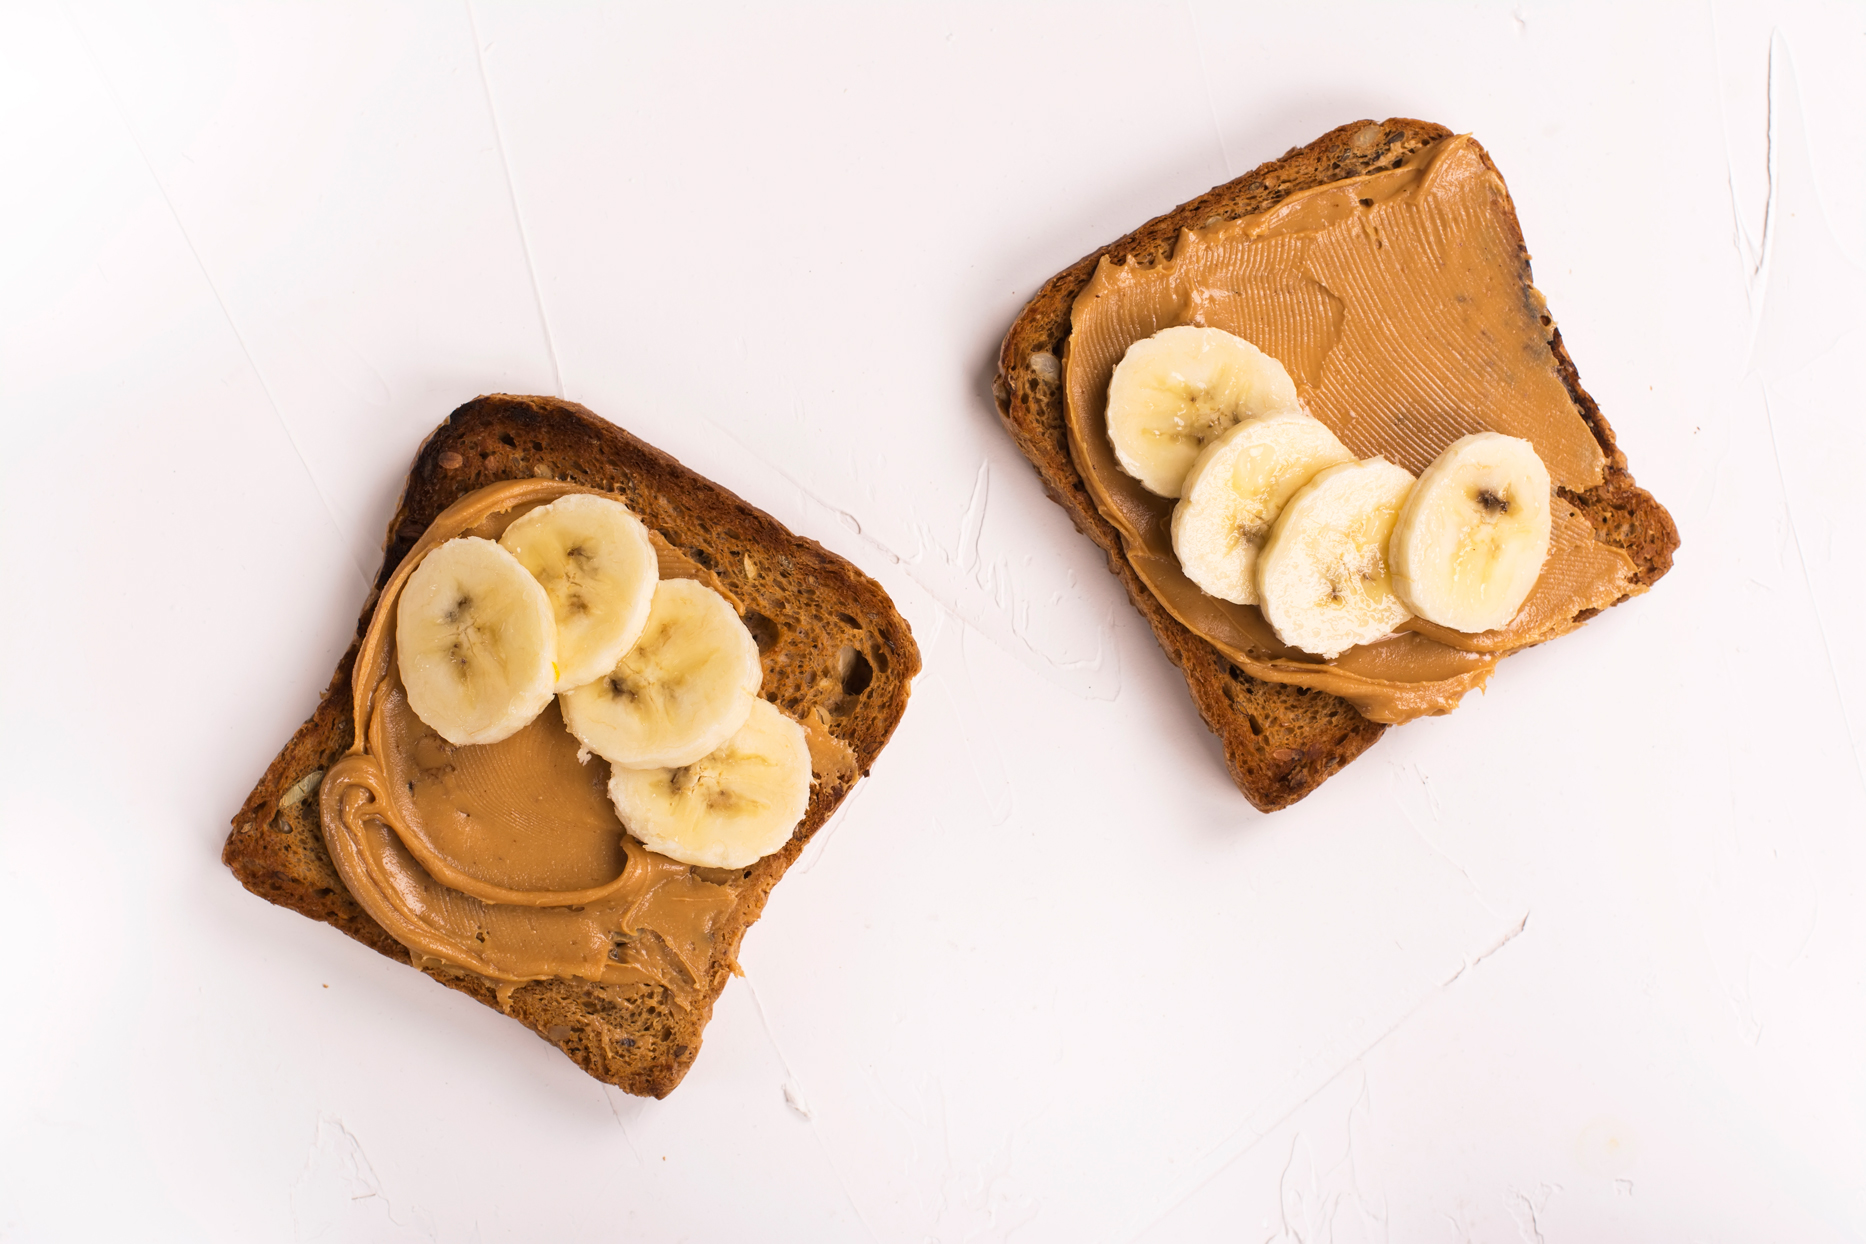 whole grain toast with peanut butter and banana slices on white background